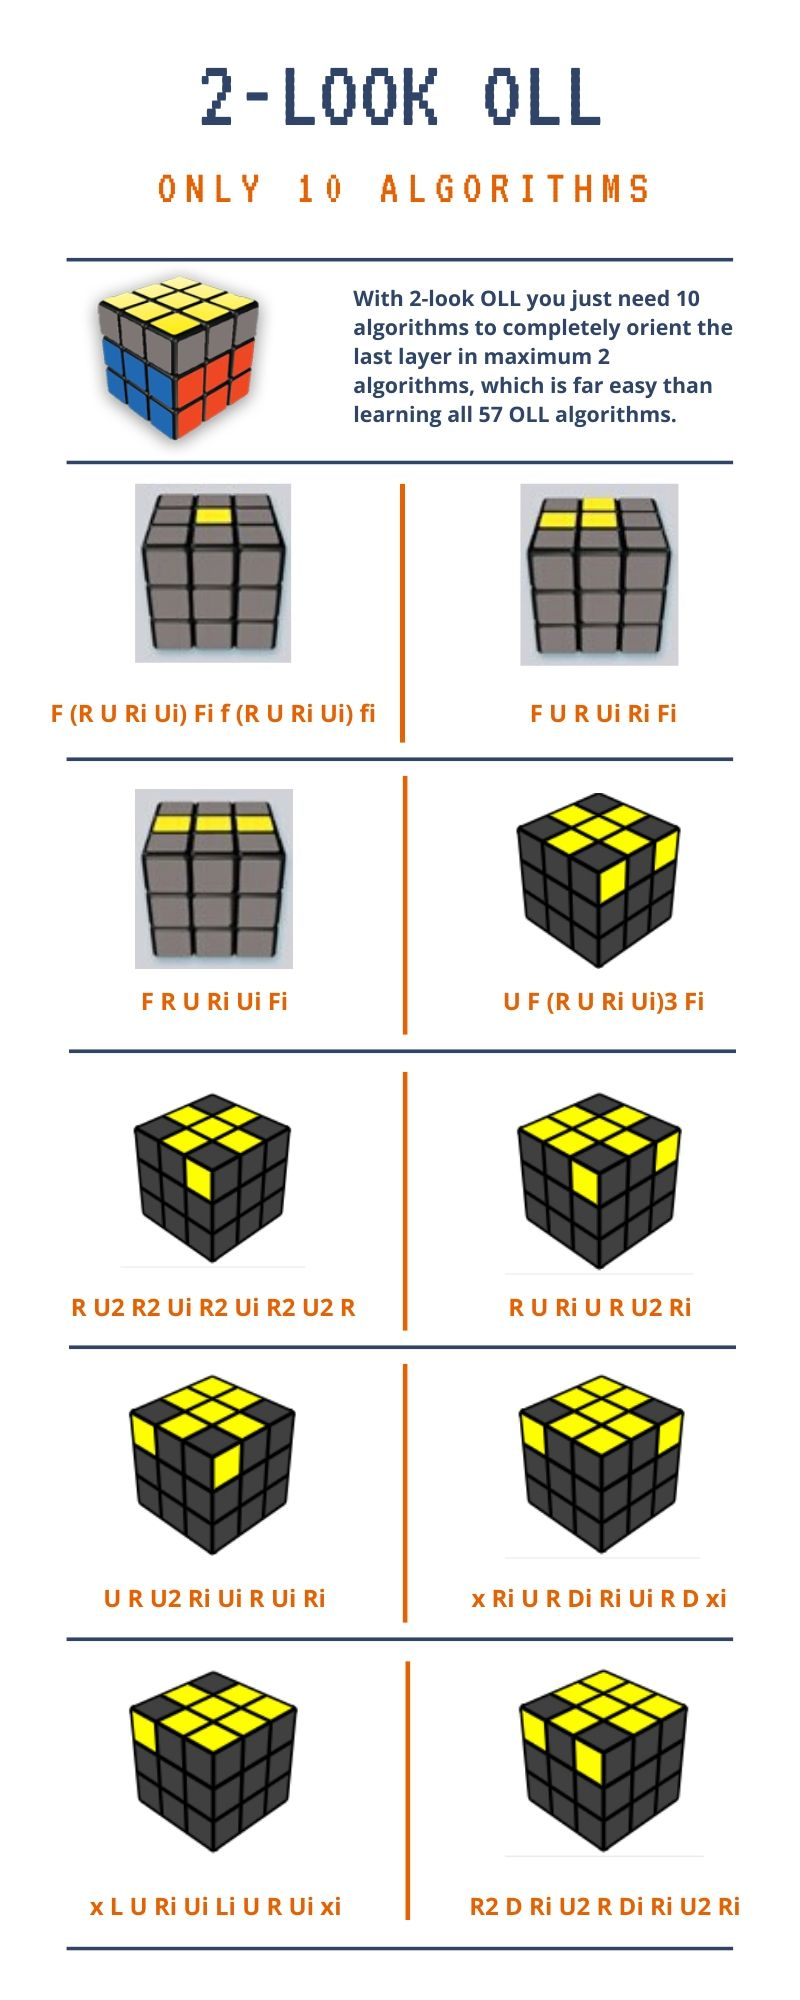 2-look oll, how to solve a rubik's cube